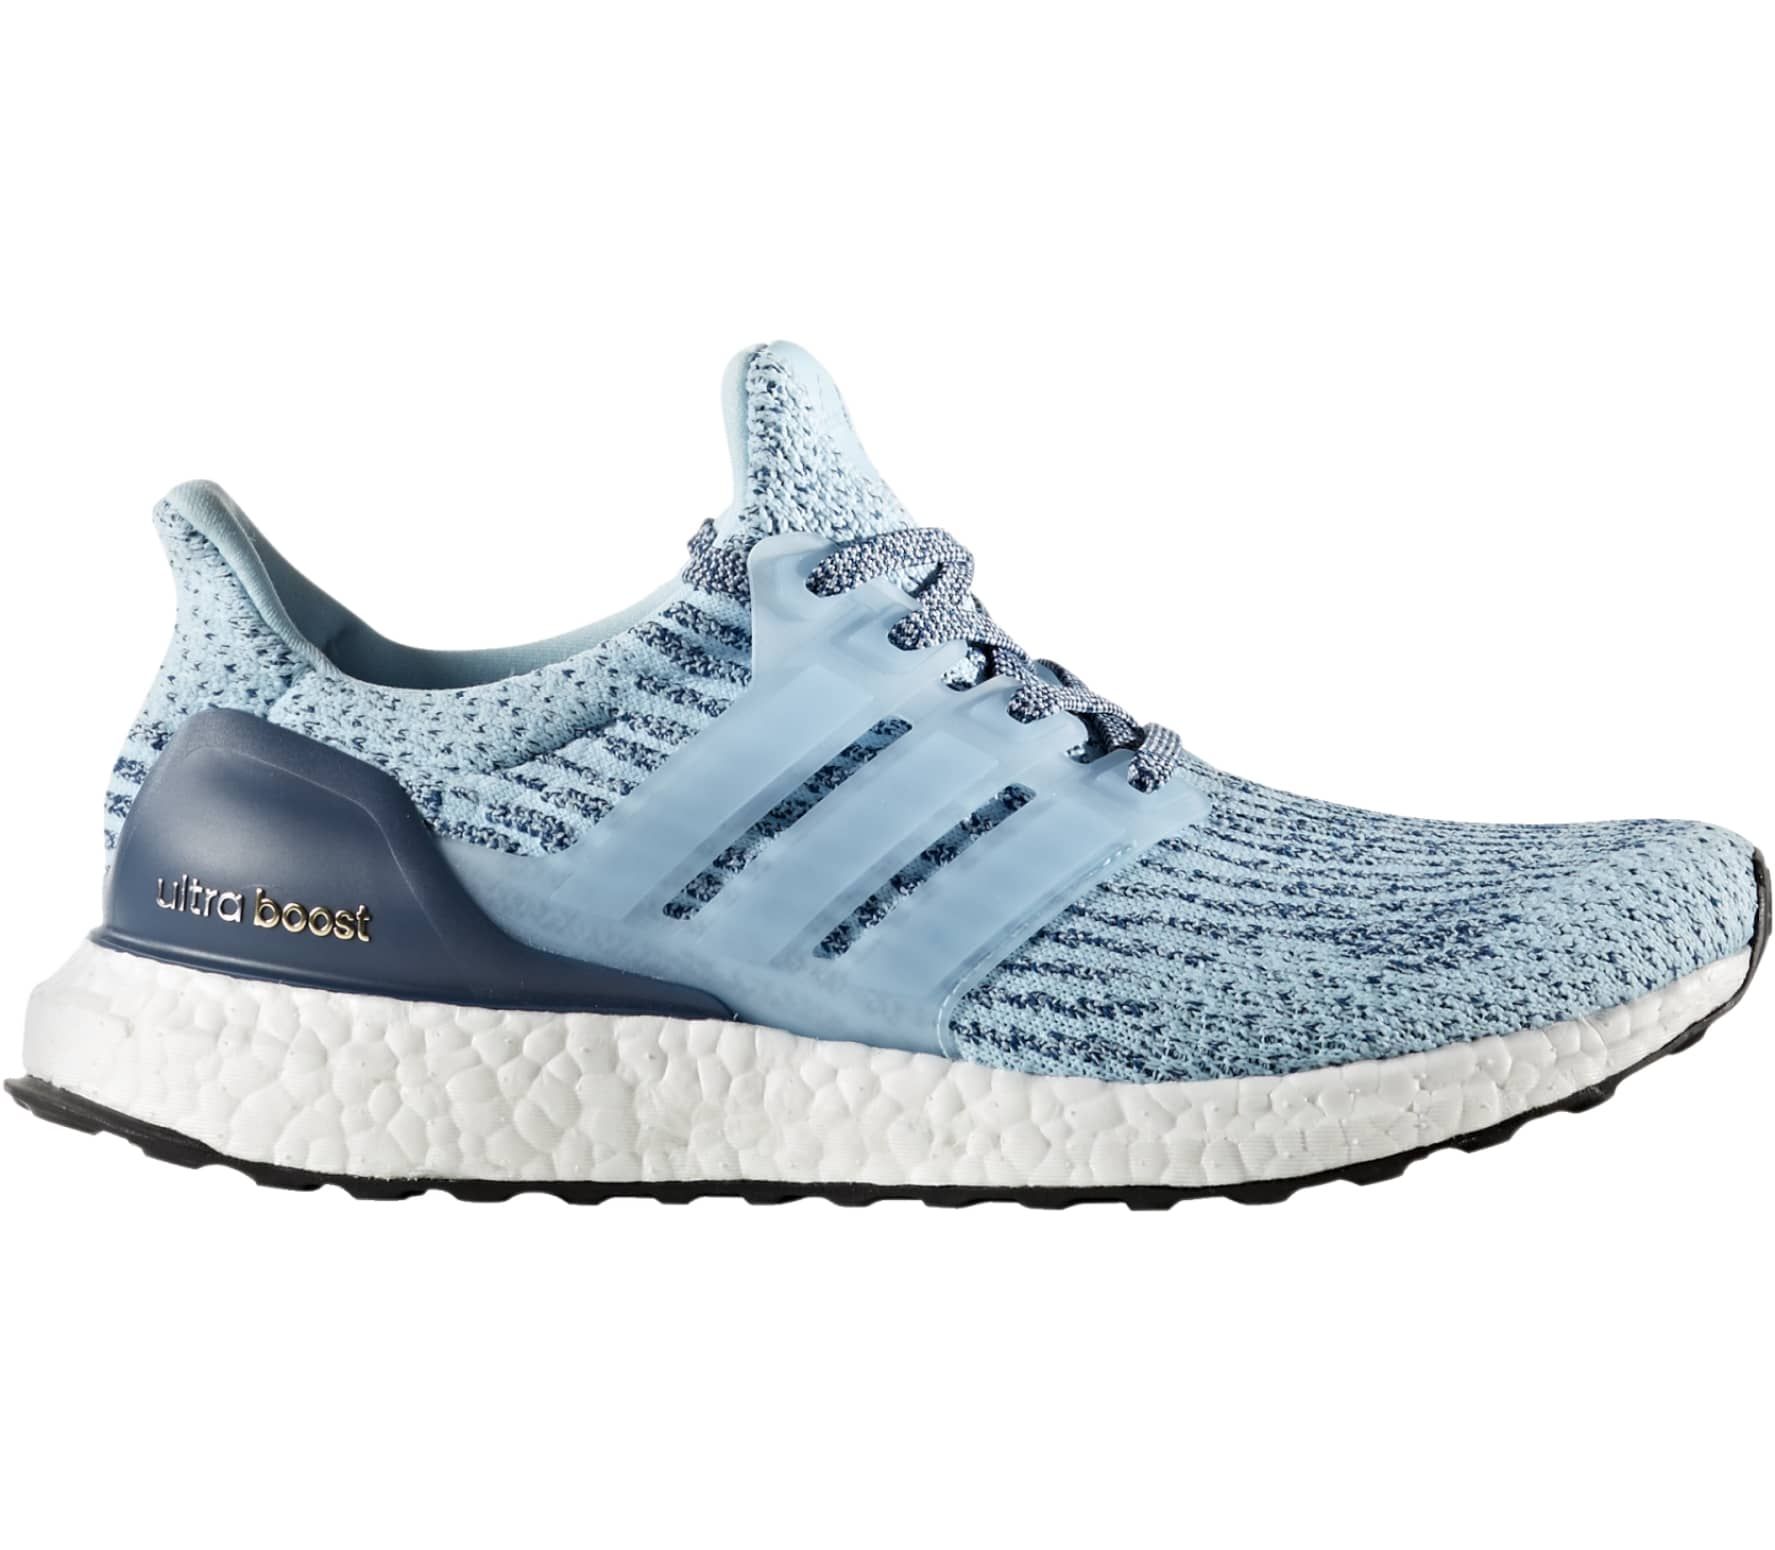 Adidas - Ultra Boost women s running shoes (light blue) - buy it at ... 707f97f932